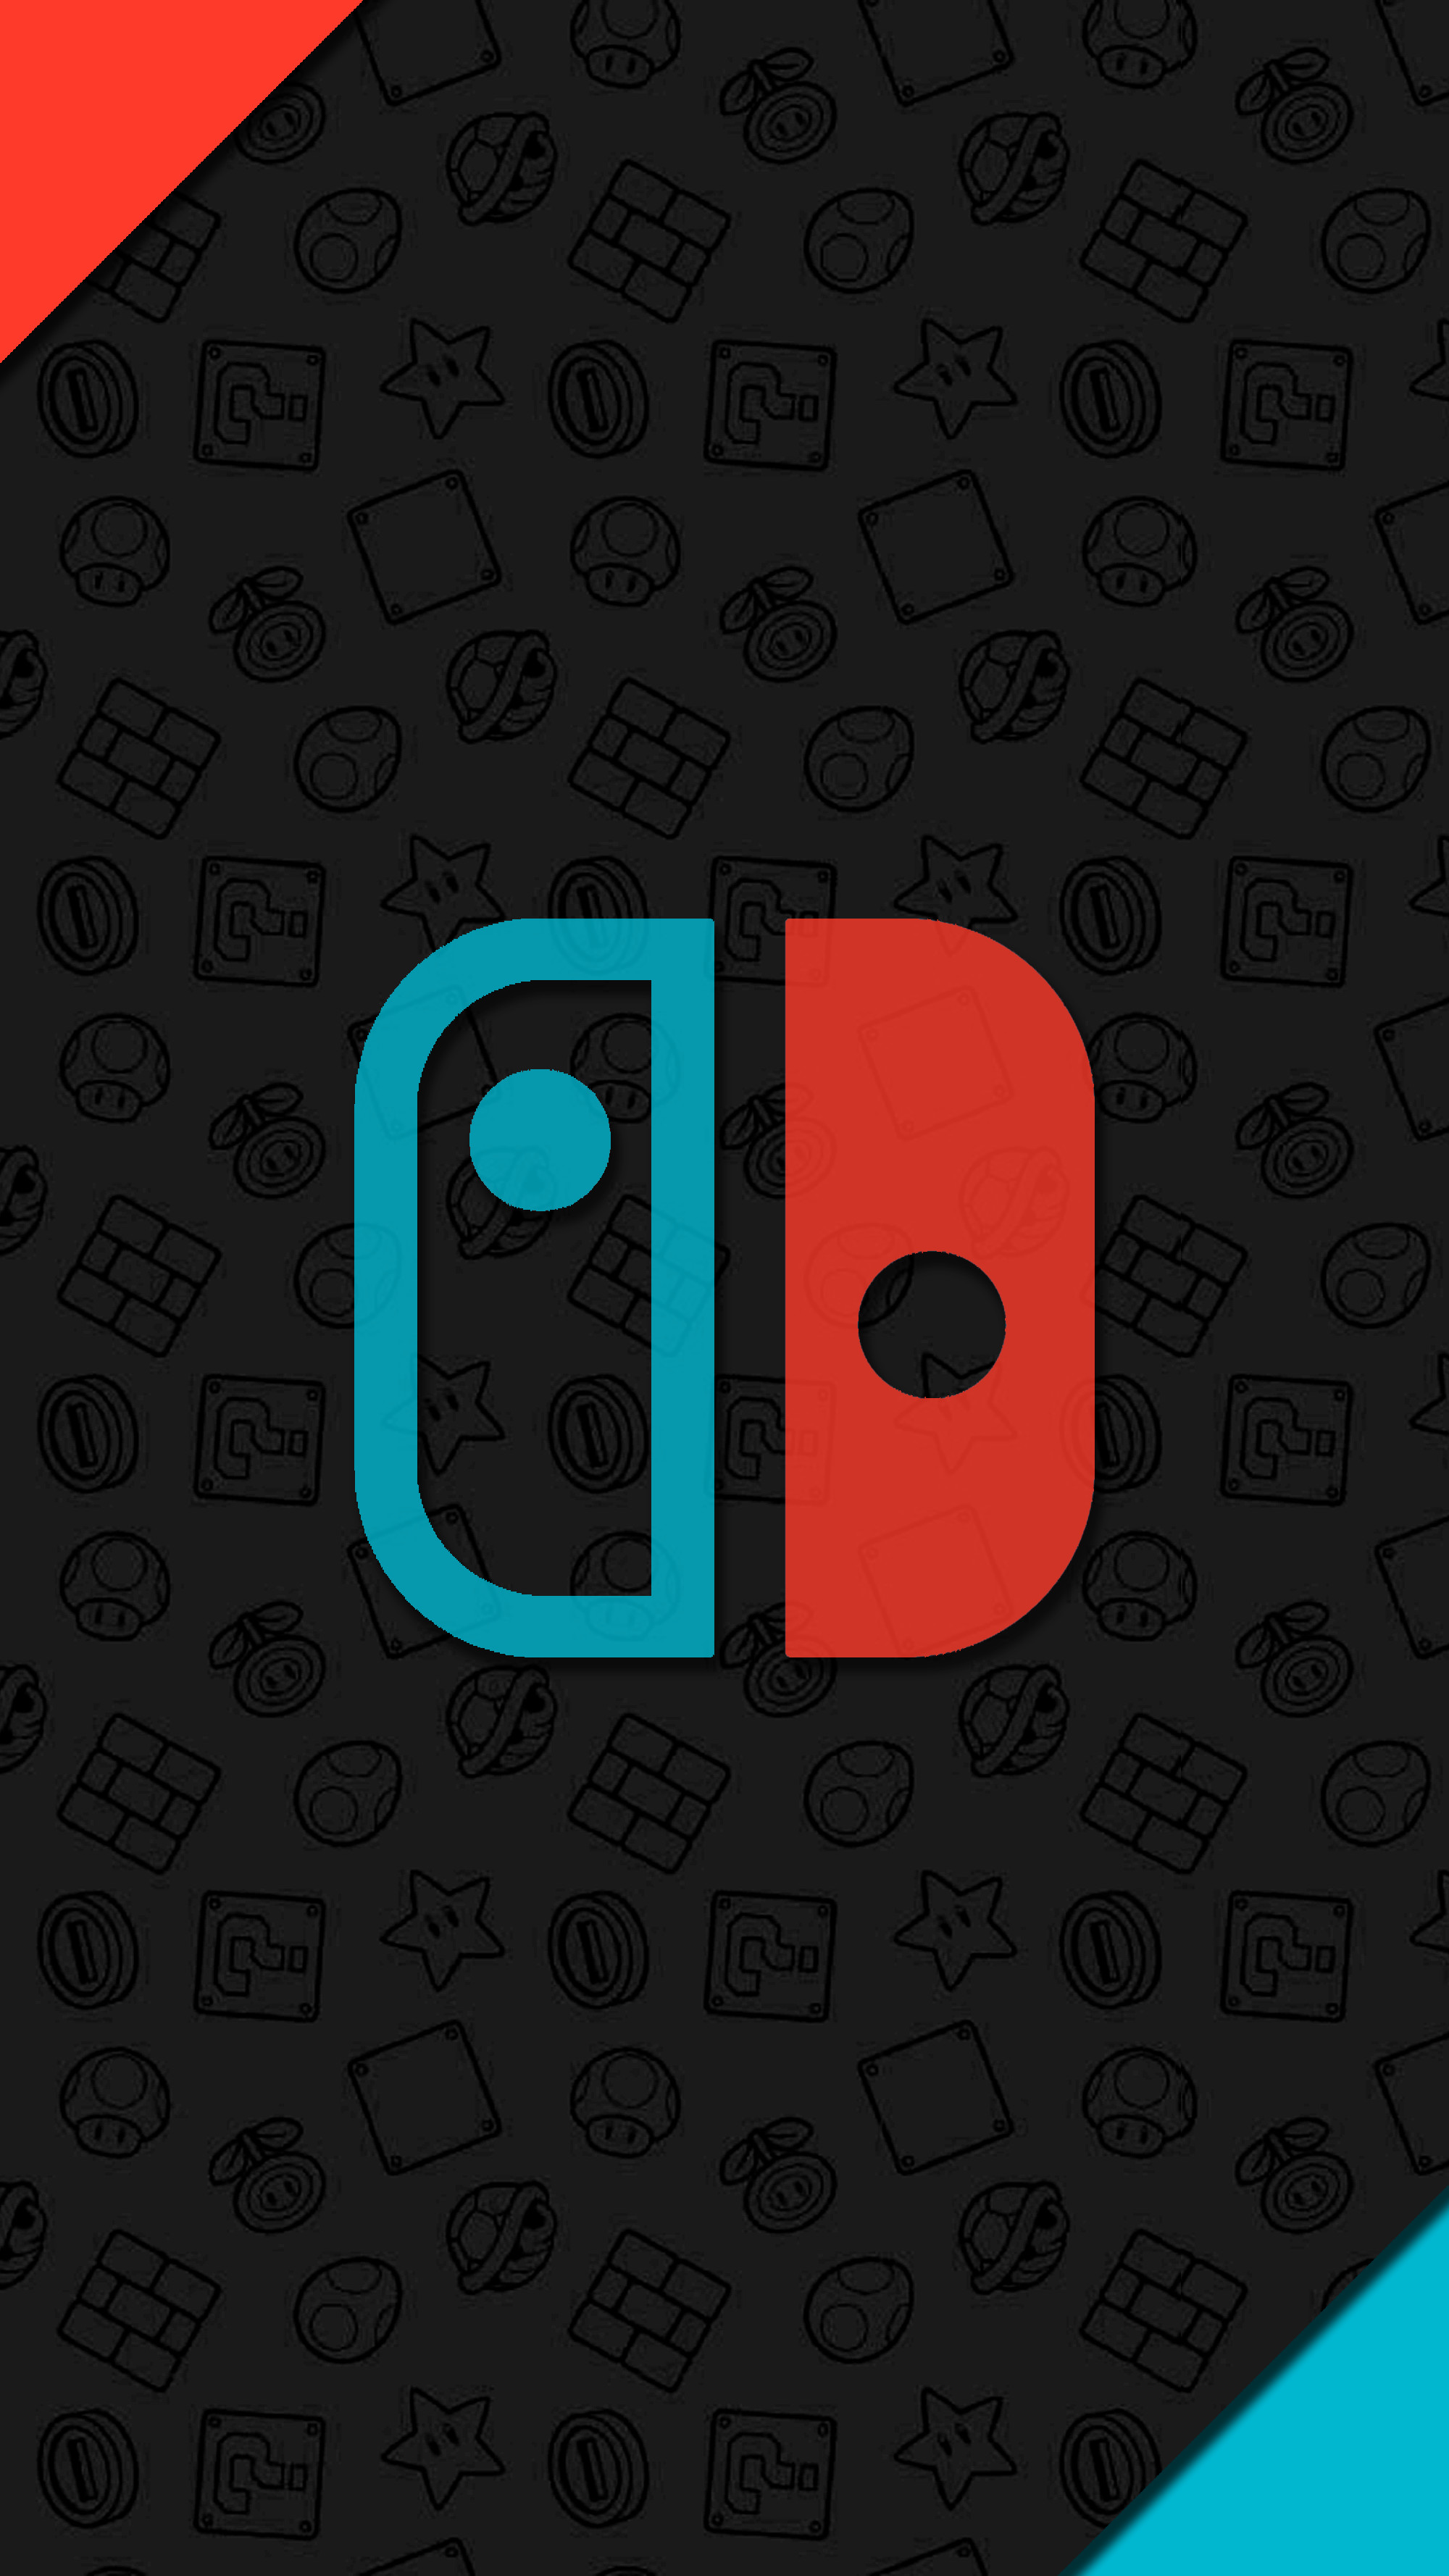 Explore Wallpaper For Your Phone, Nintendo Games, and more!